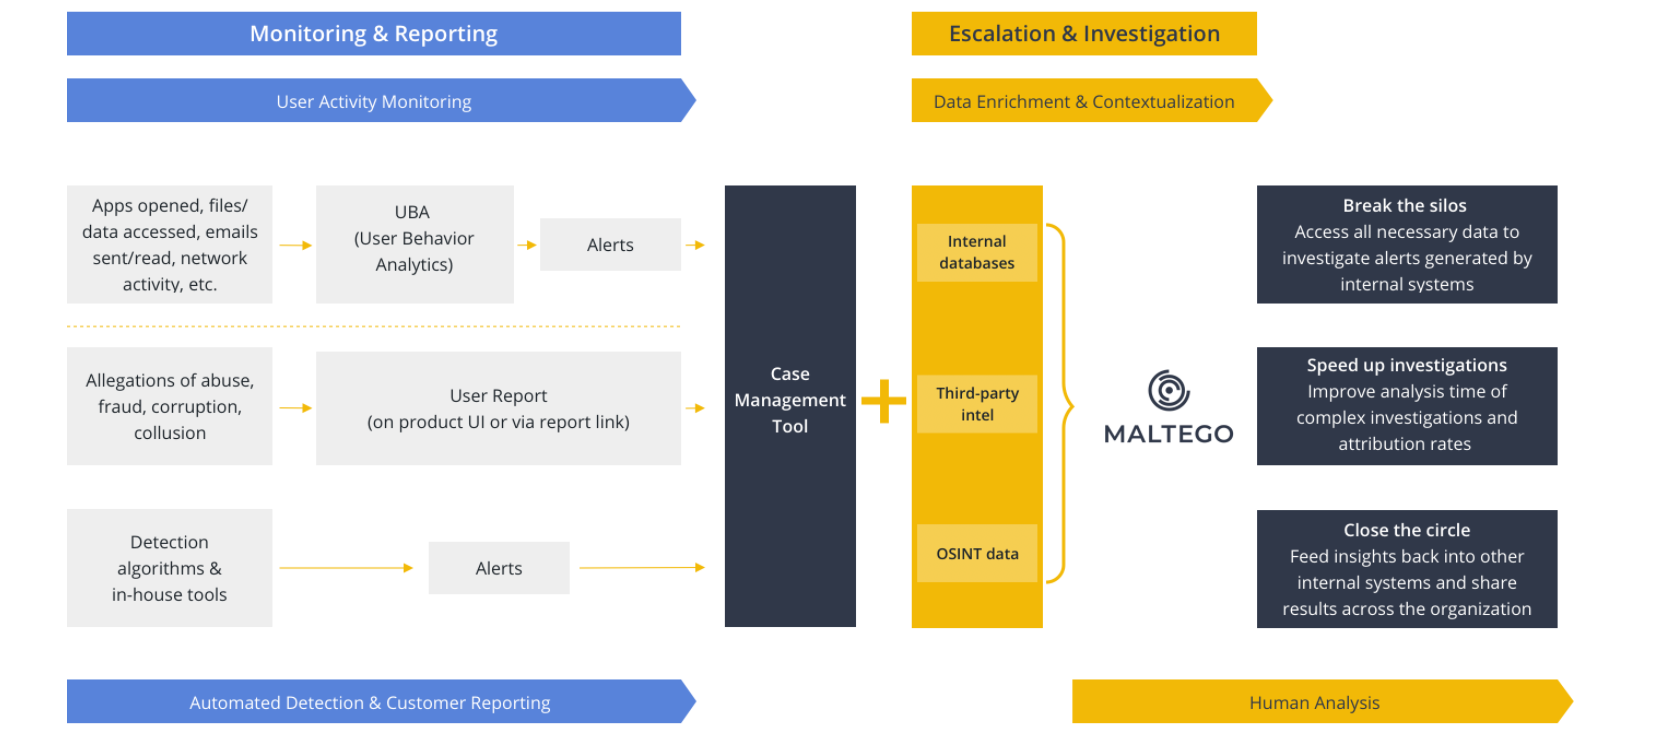 Maltego can be integrated into Trust & Safety investigation workflow